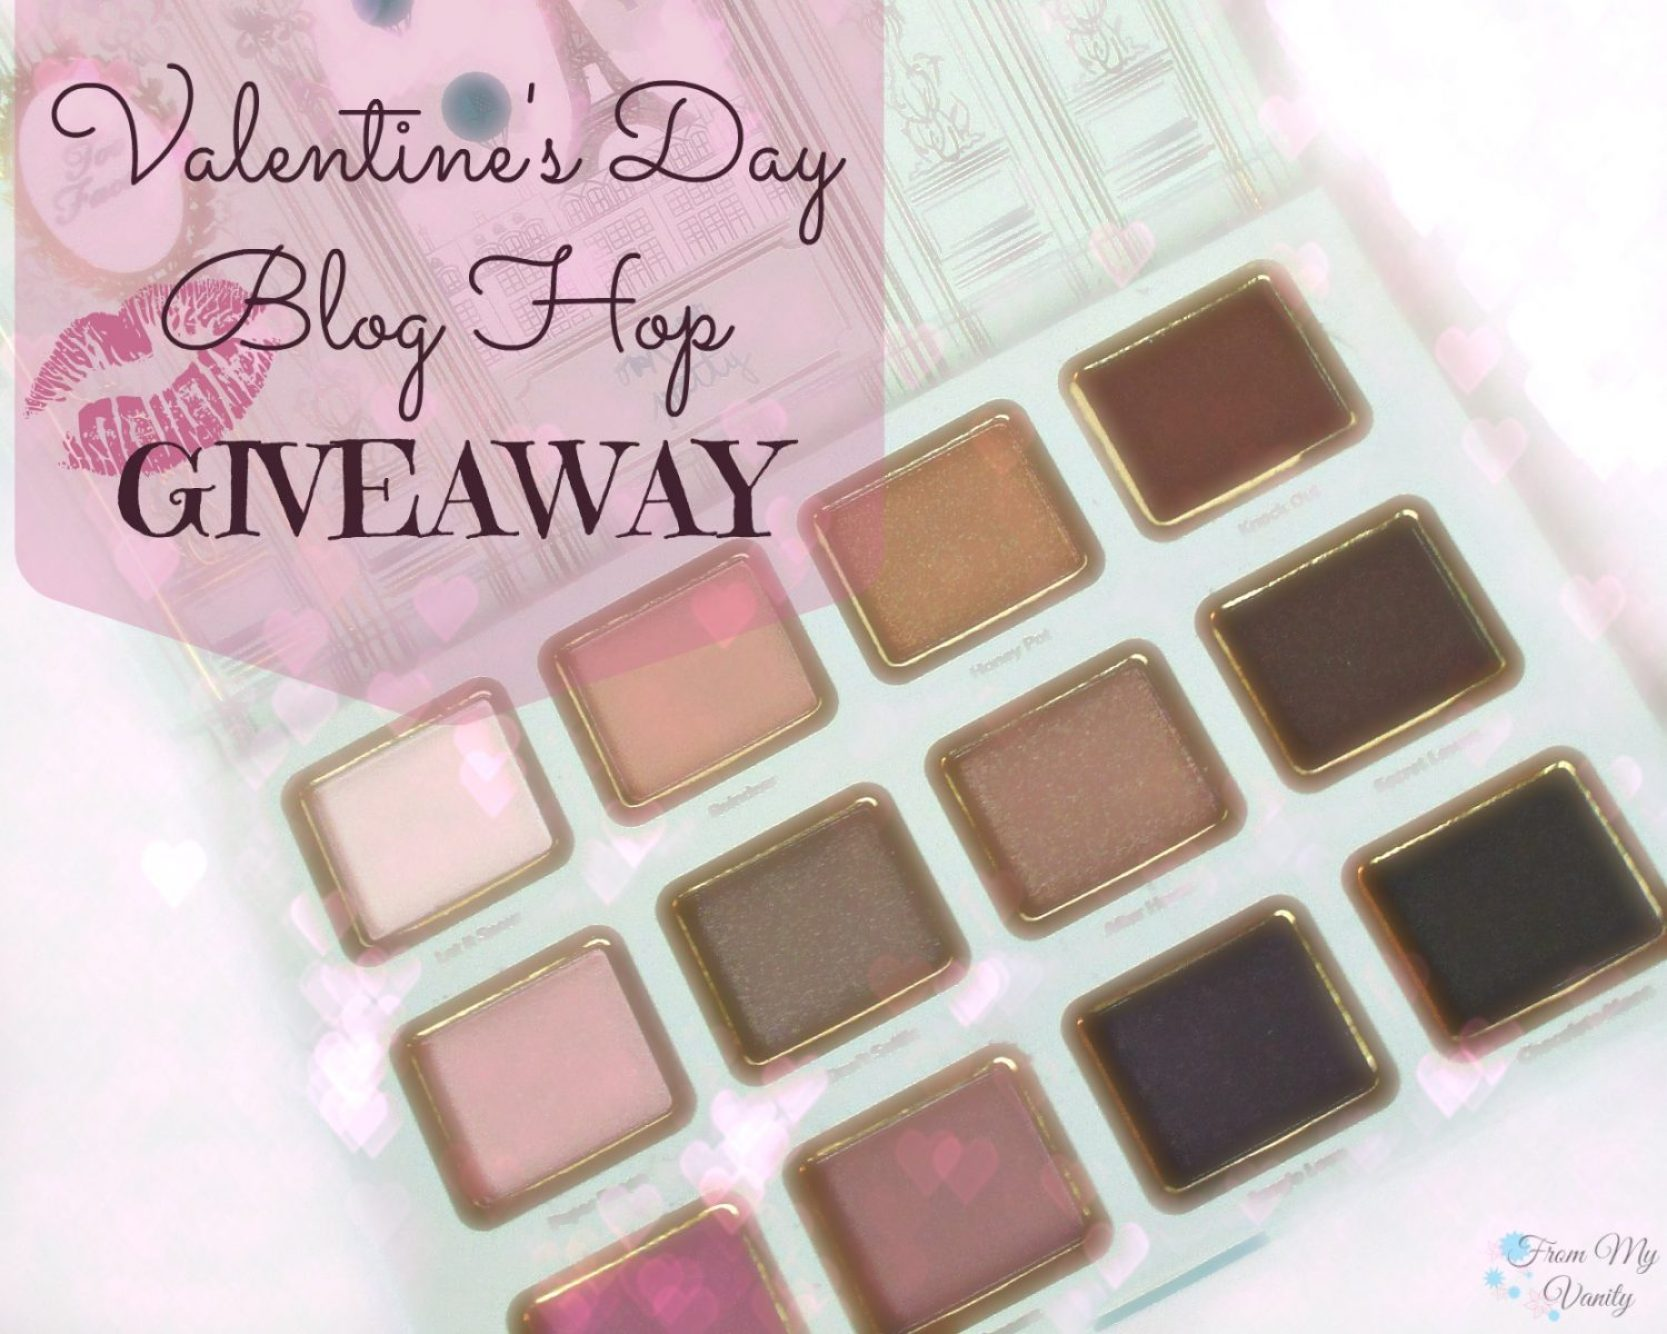 Valentine's Day Blog Hop Giveaway // #TooFaced #beauty #giveaway #ladykaty92 FromMyVanity.com